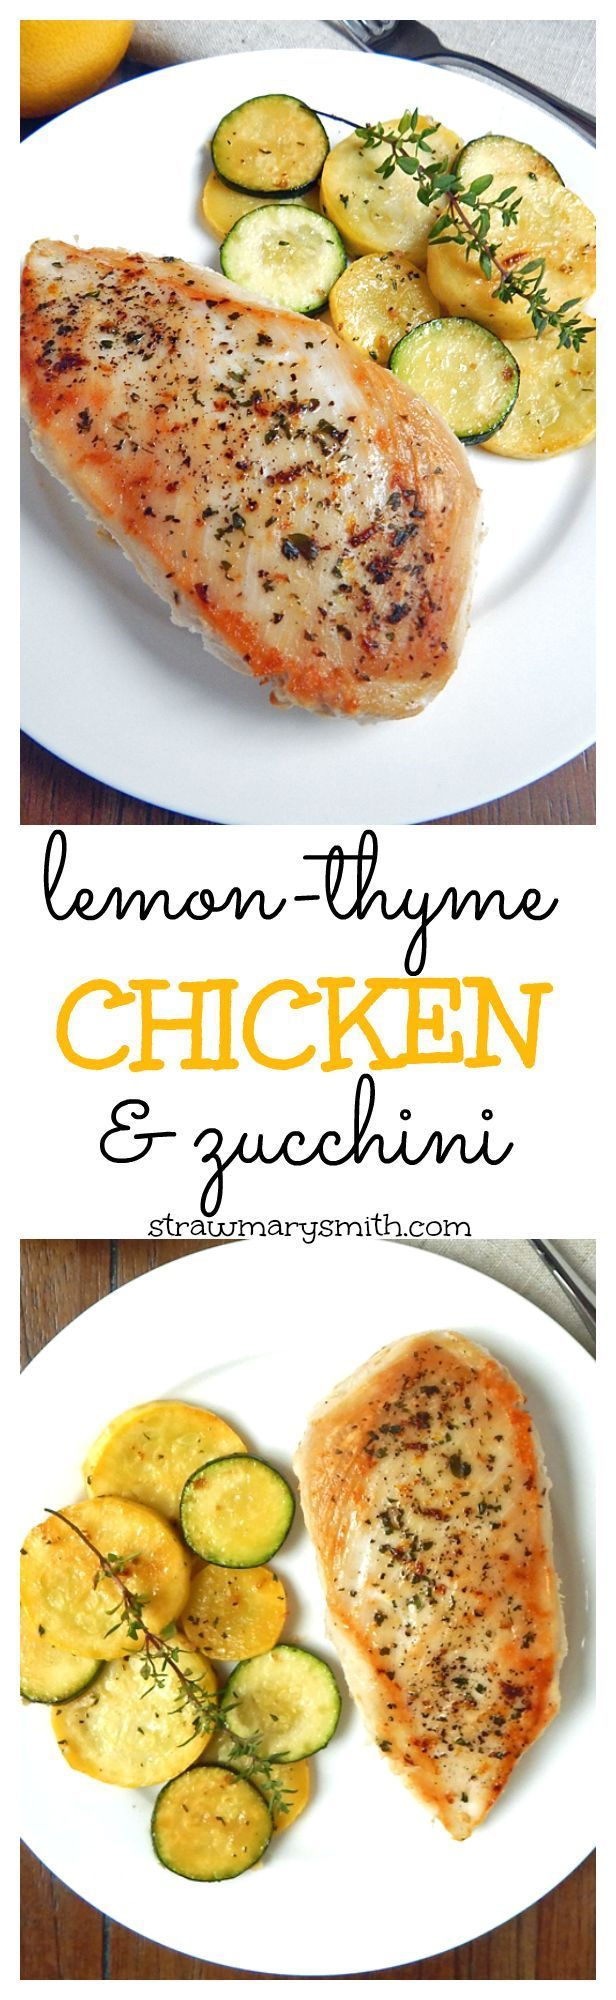 Lemon-Thyme Chicken & Zucchini is your light & simple dinner for two! Herbed and tangy chicken with a side of flavorful zucchini - made in just 15 minutes!Great for Supper or Dinner.